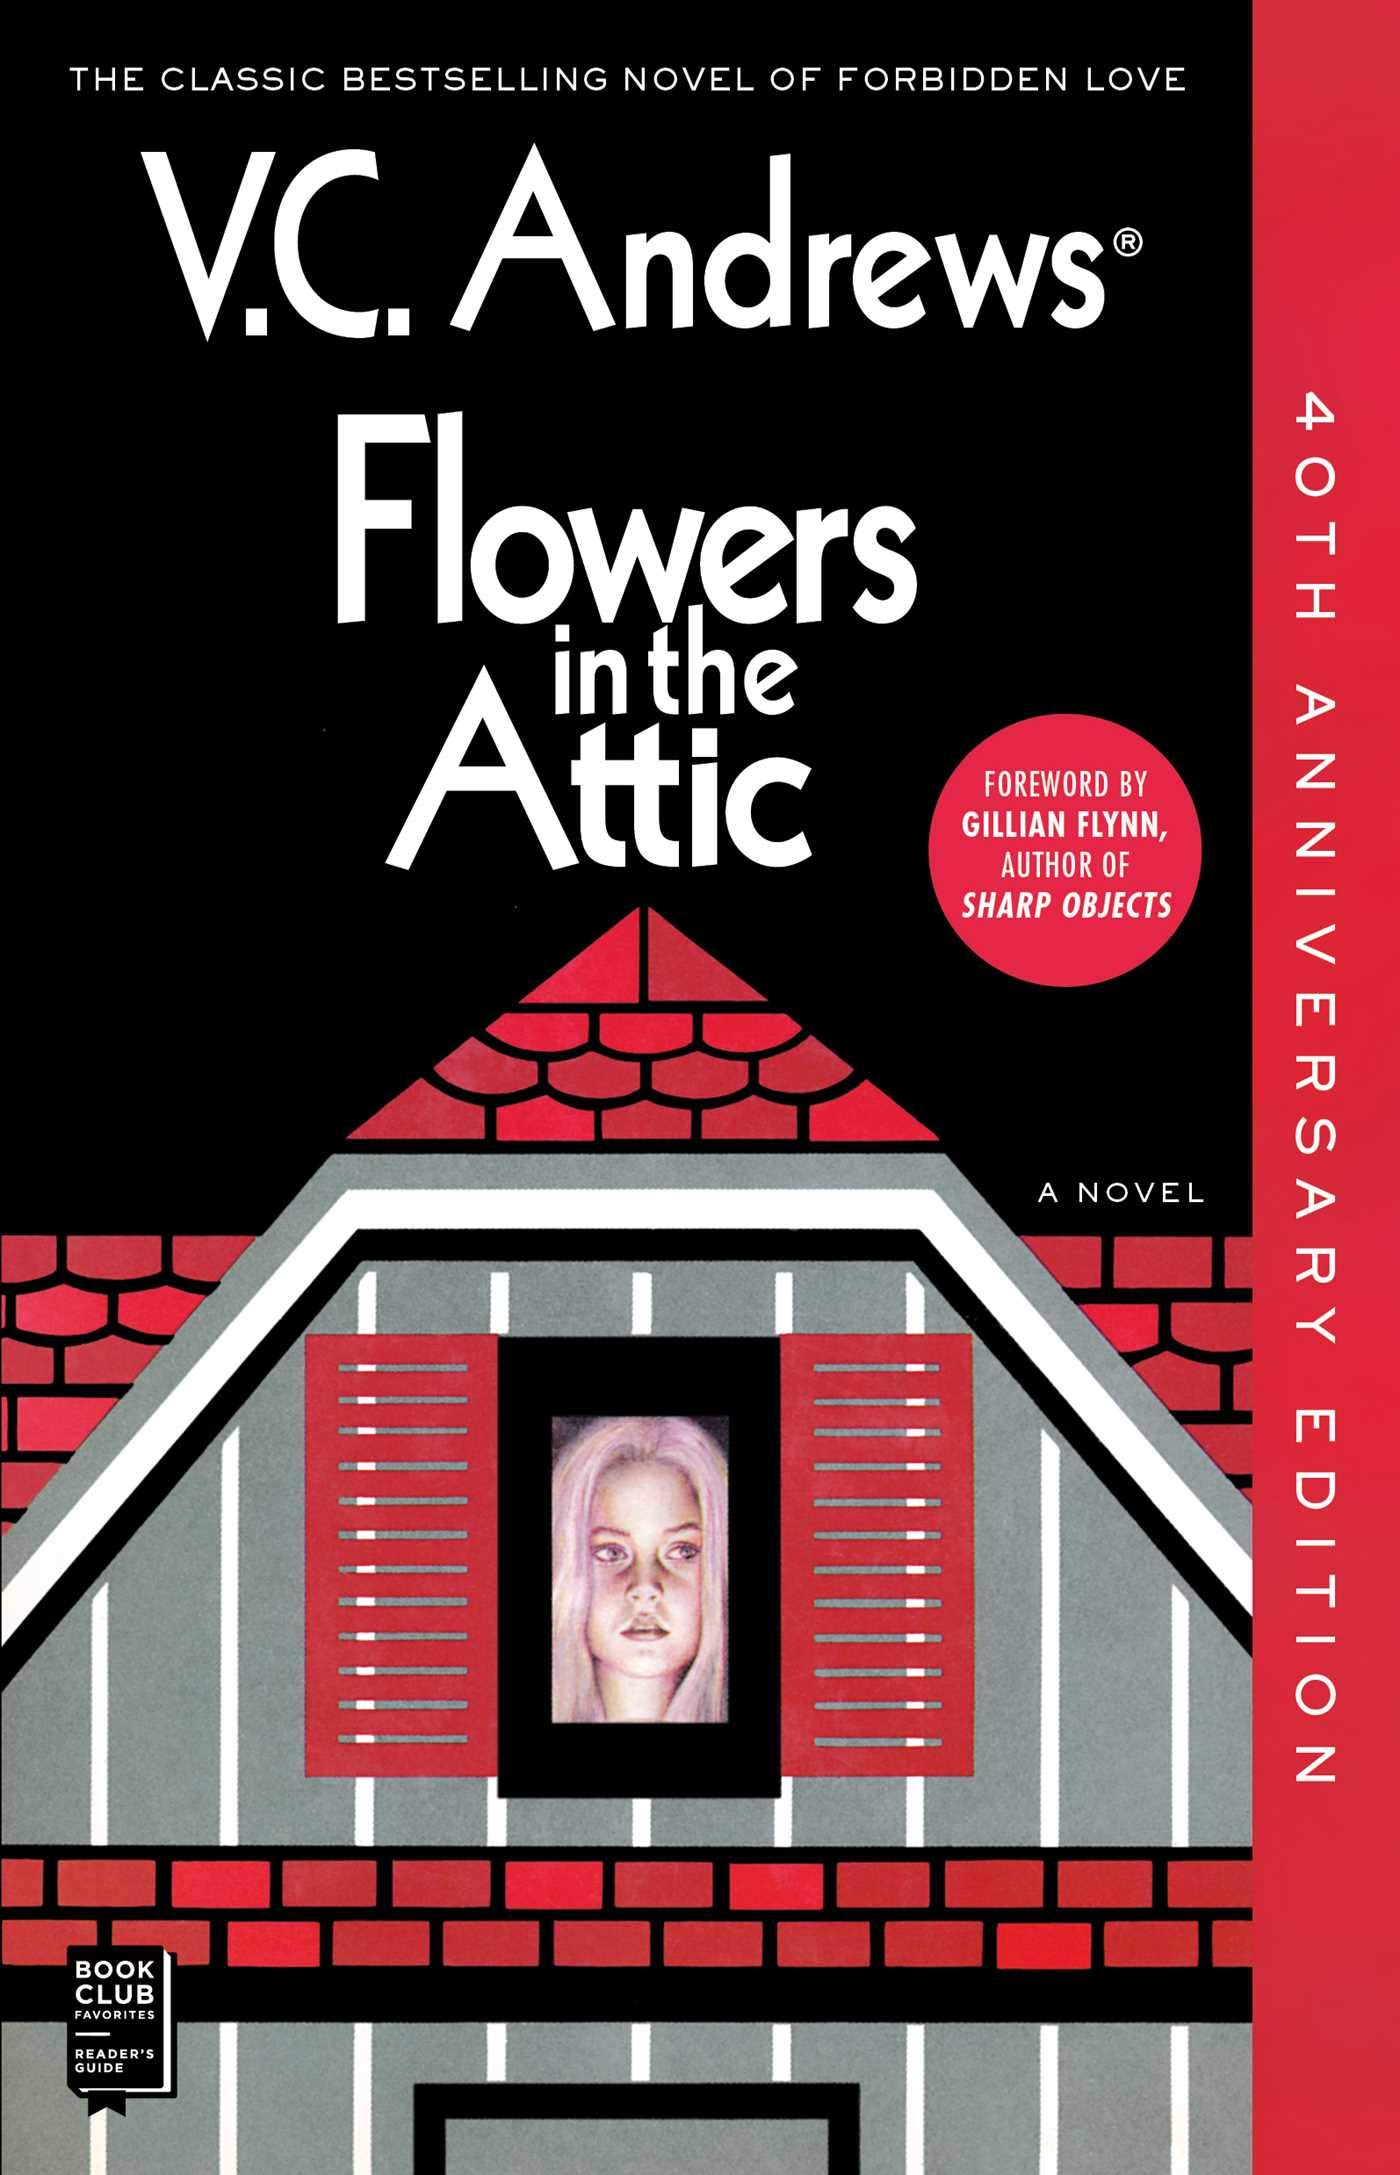 Flowers in the Attic: 40th Anniversary Edition (1) (Dollanganger): Andrews,  V.C.: 9781982108106: Amazon.com: Books